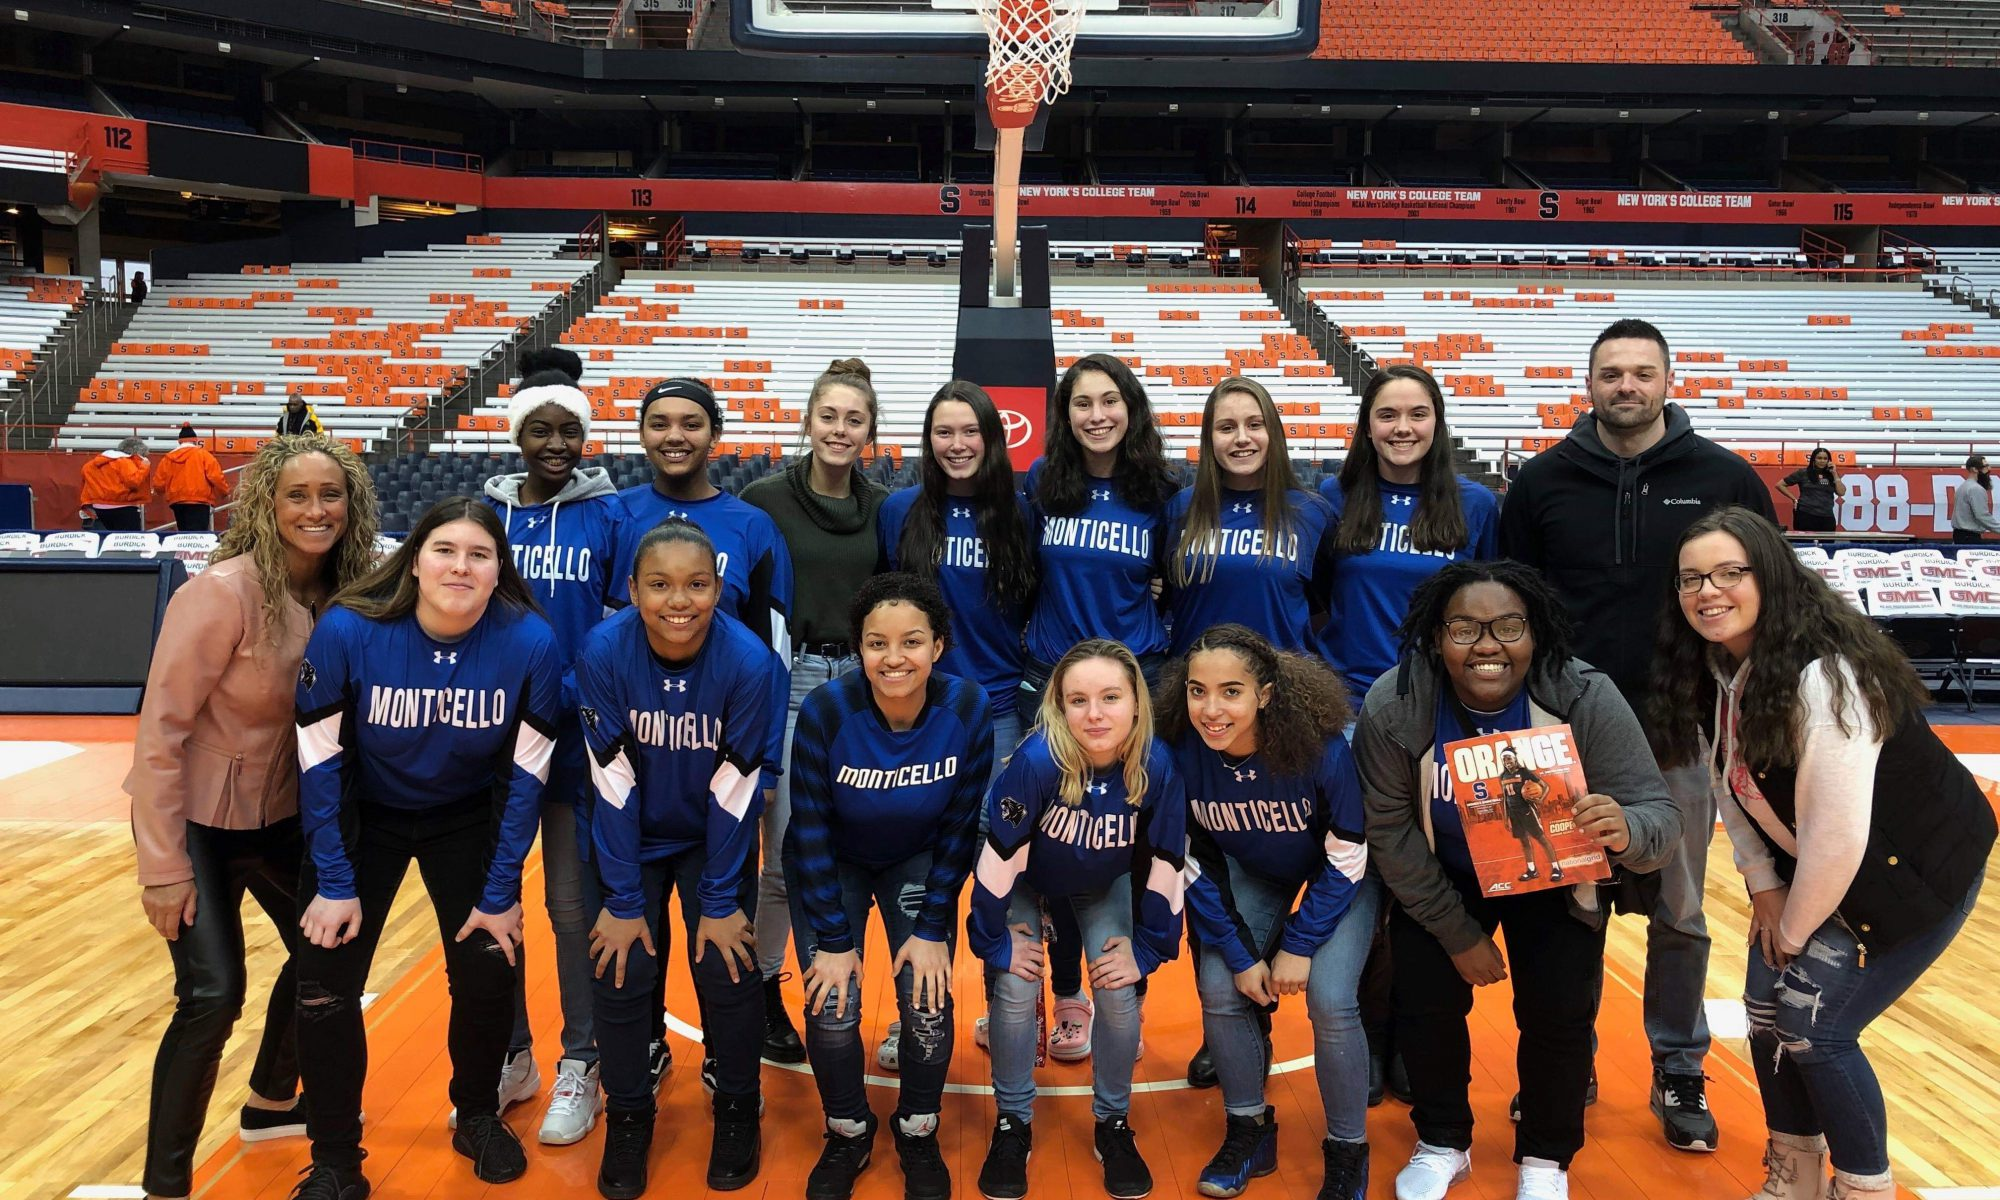 The Monticello High School girls basketball team stands center court at Syracuse